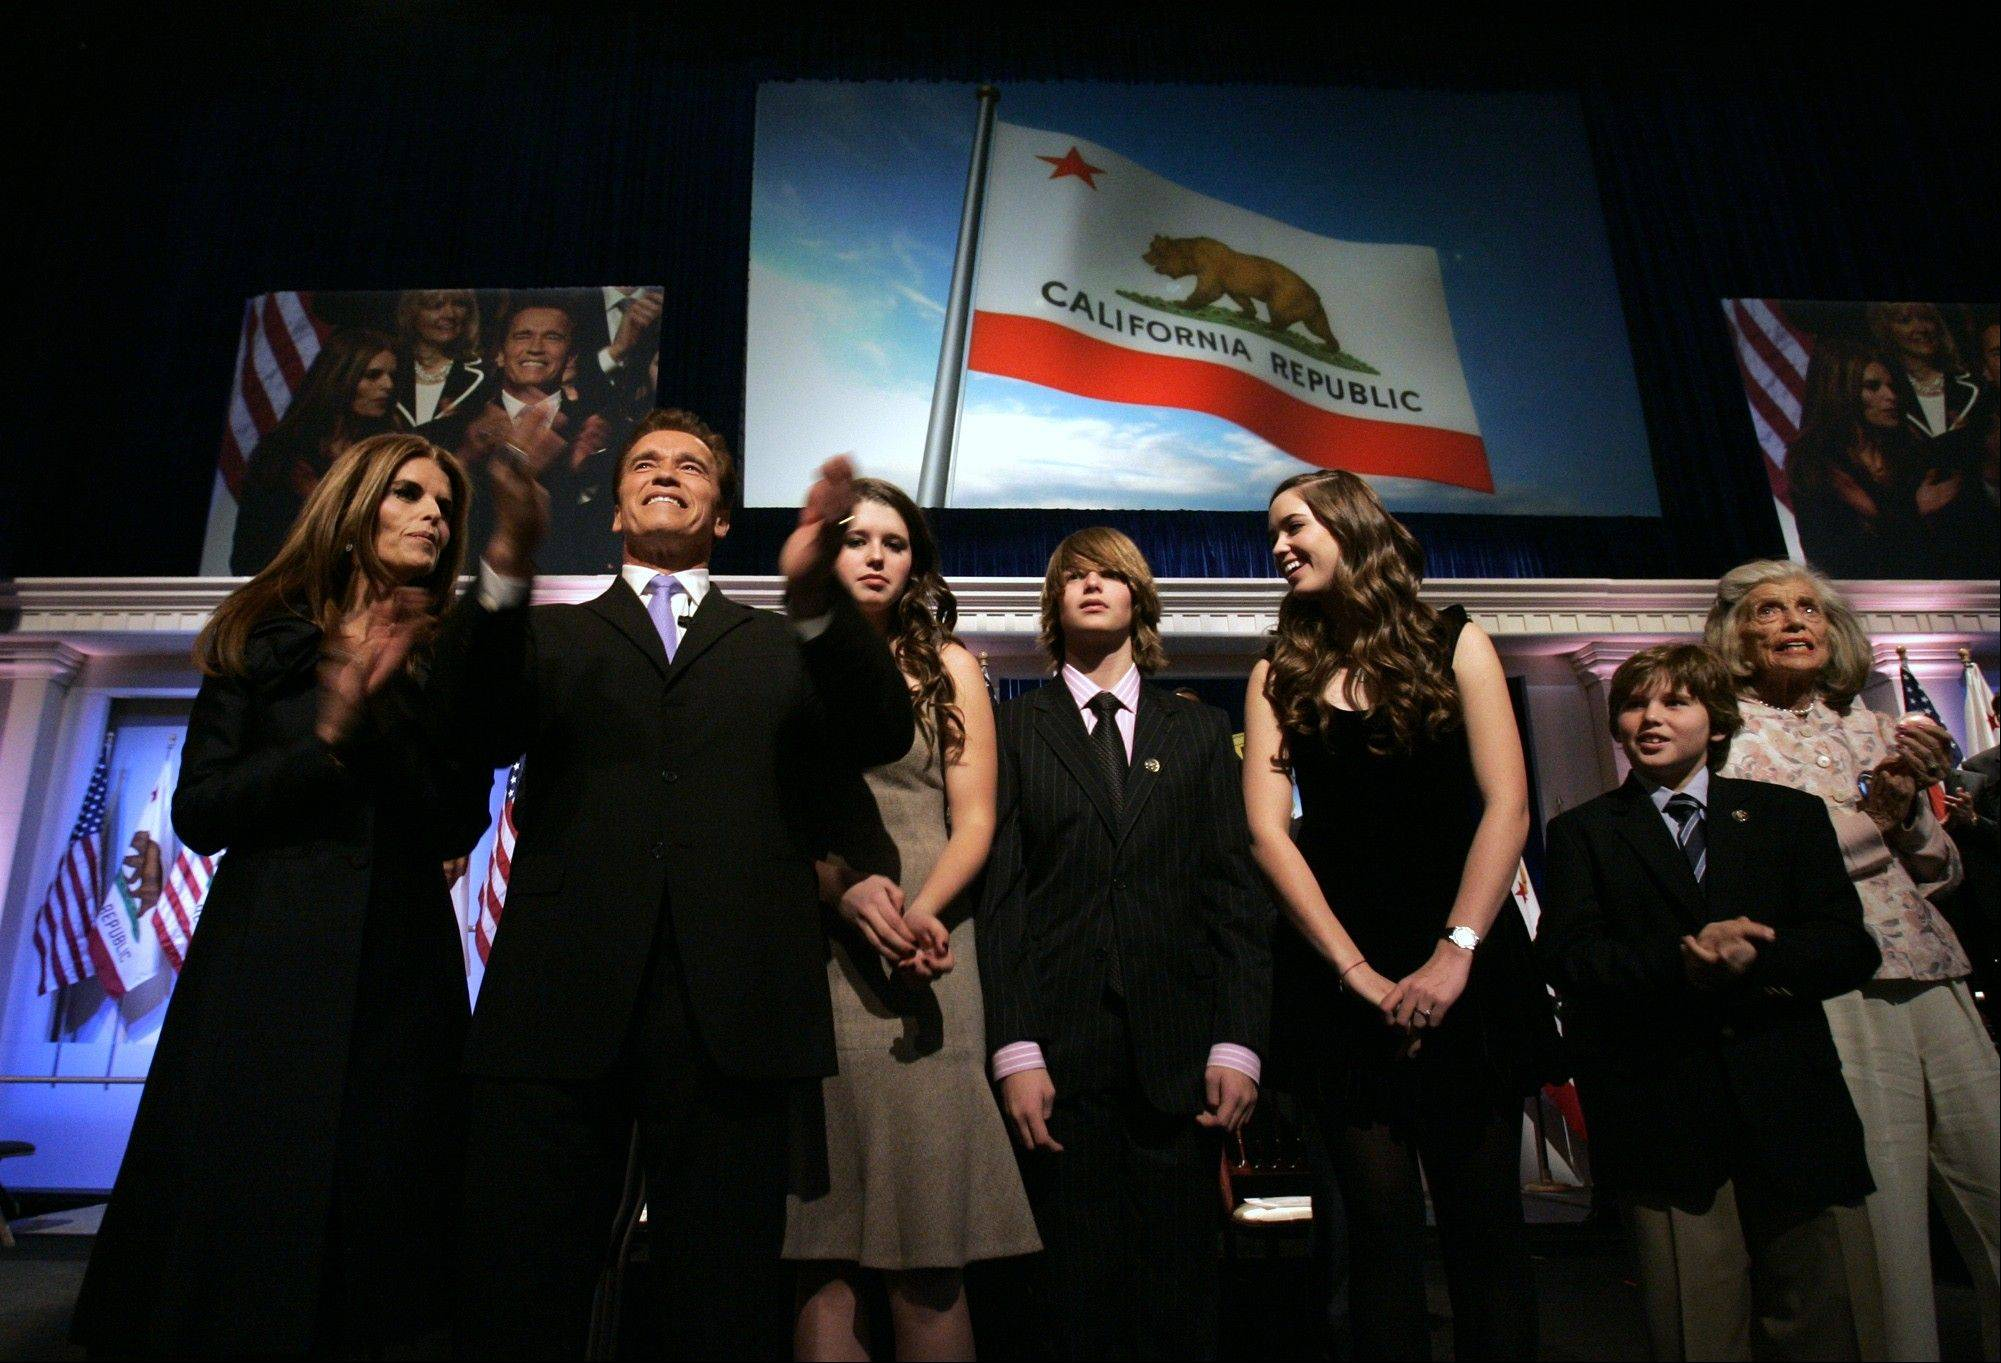 "In this Jan. 5, 2007 file photo, Gov. Arnold Schwarzenegger is seen with his family, wife Maria Shriver, left, daughter Katherine, third from left, son Patrick, fourth from left, daughter Christina, fifth from left, son Christopher, second from right, and mother-in-law Eunice Shriver, right, following his second inauguration in Sacramento, Calif. In an interview with ""60 minutes"" that is scheduled to air Sunday, Schwarzenegger says the affair he had with longtime housekeeper Mildred Baena, that led to a son, was ""the stupidest thing"", he ever did to Shriver, who filed for divorce last July."